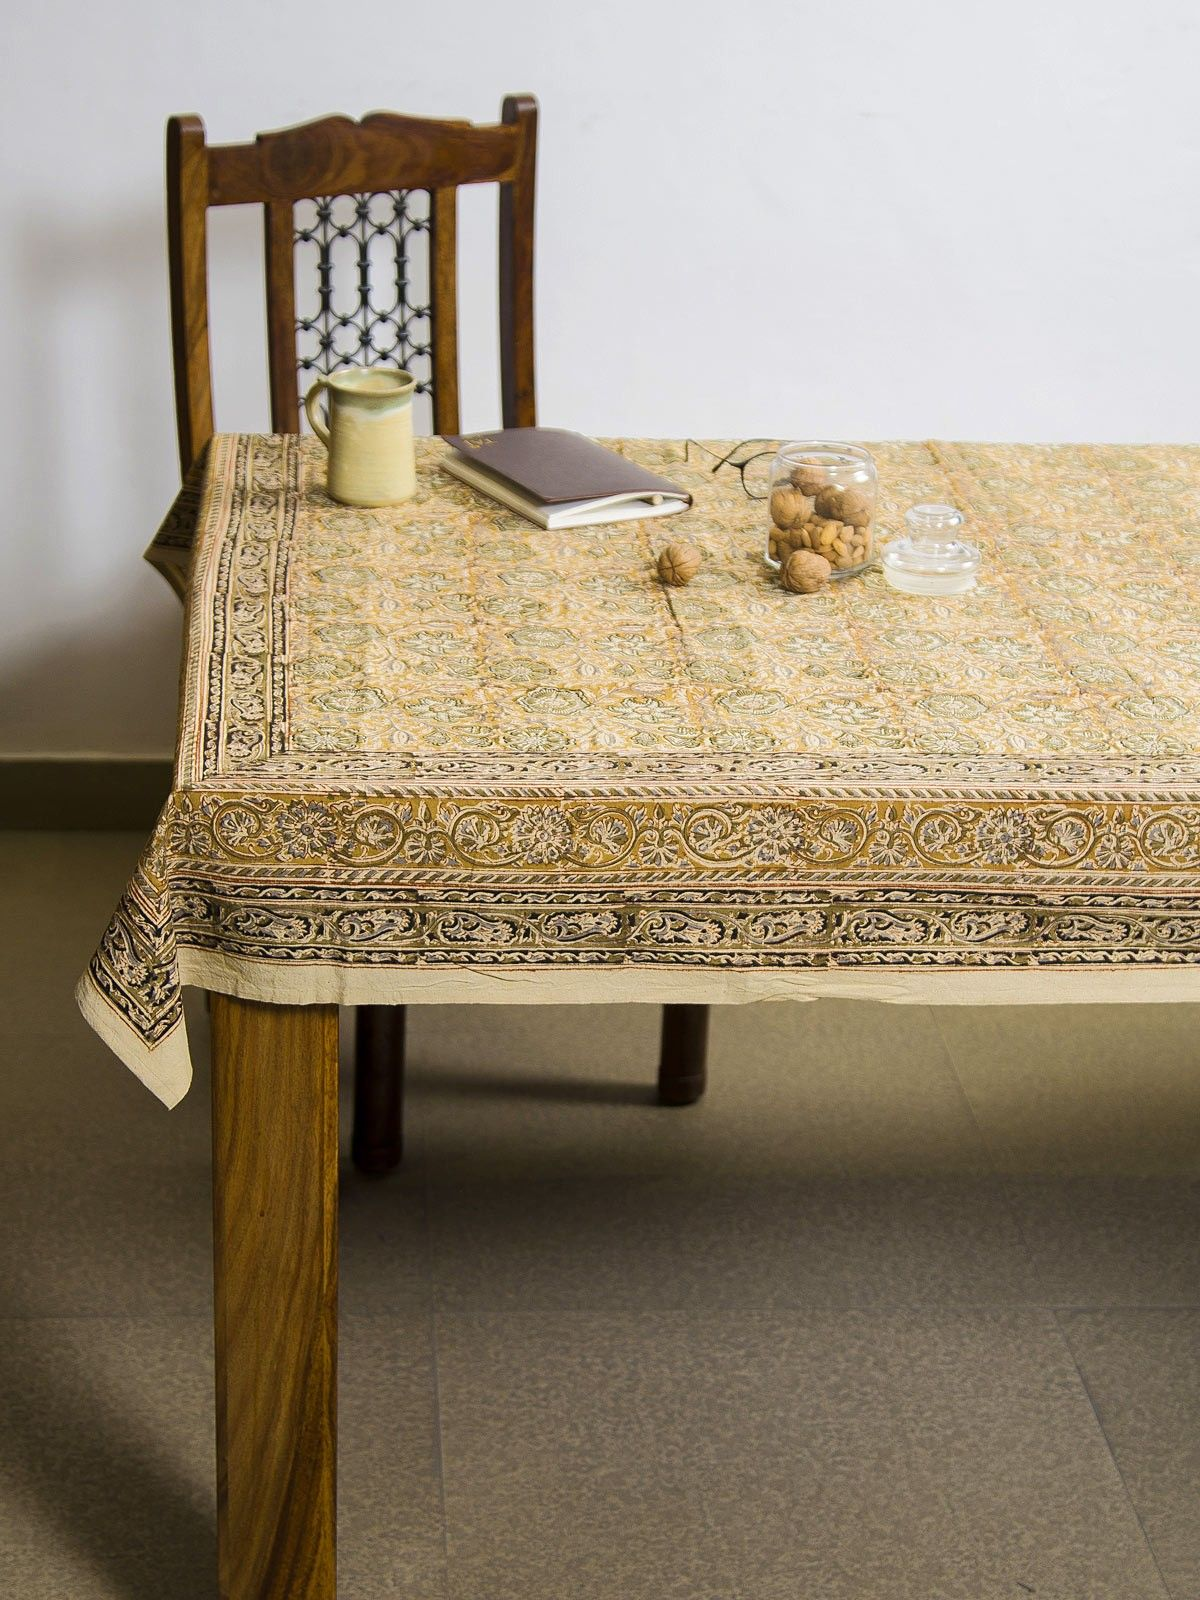 Dijon Sumana Kalamkari 6 seater table cover